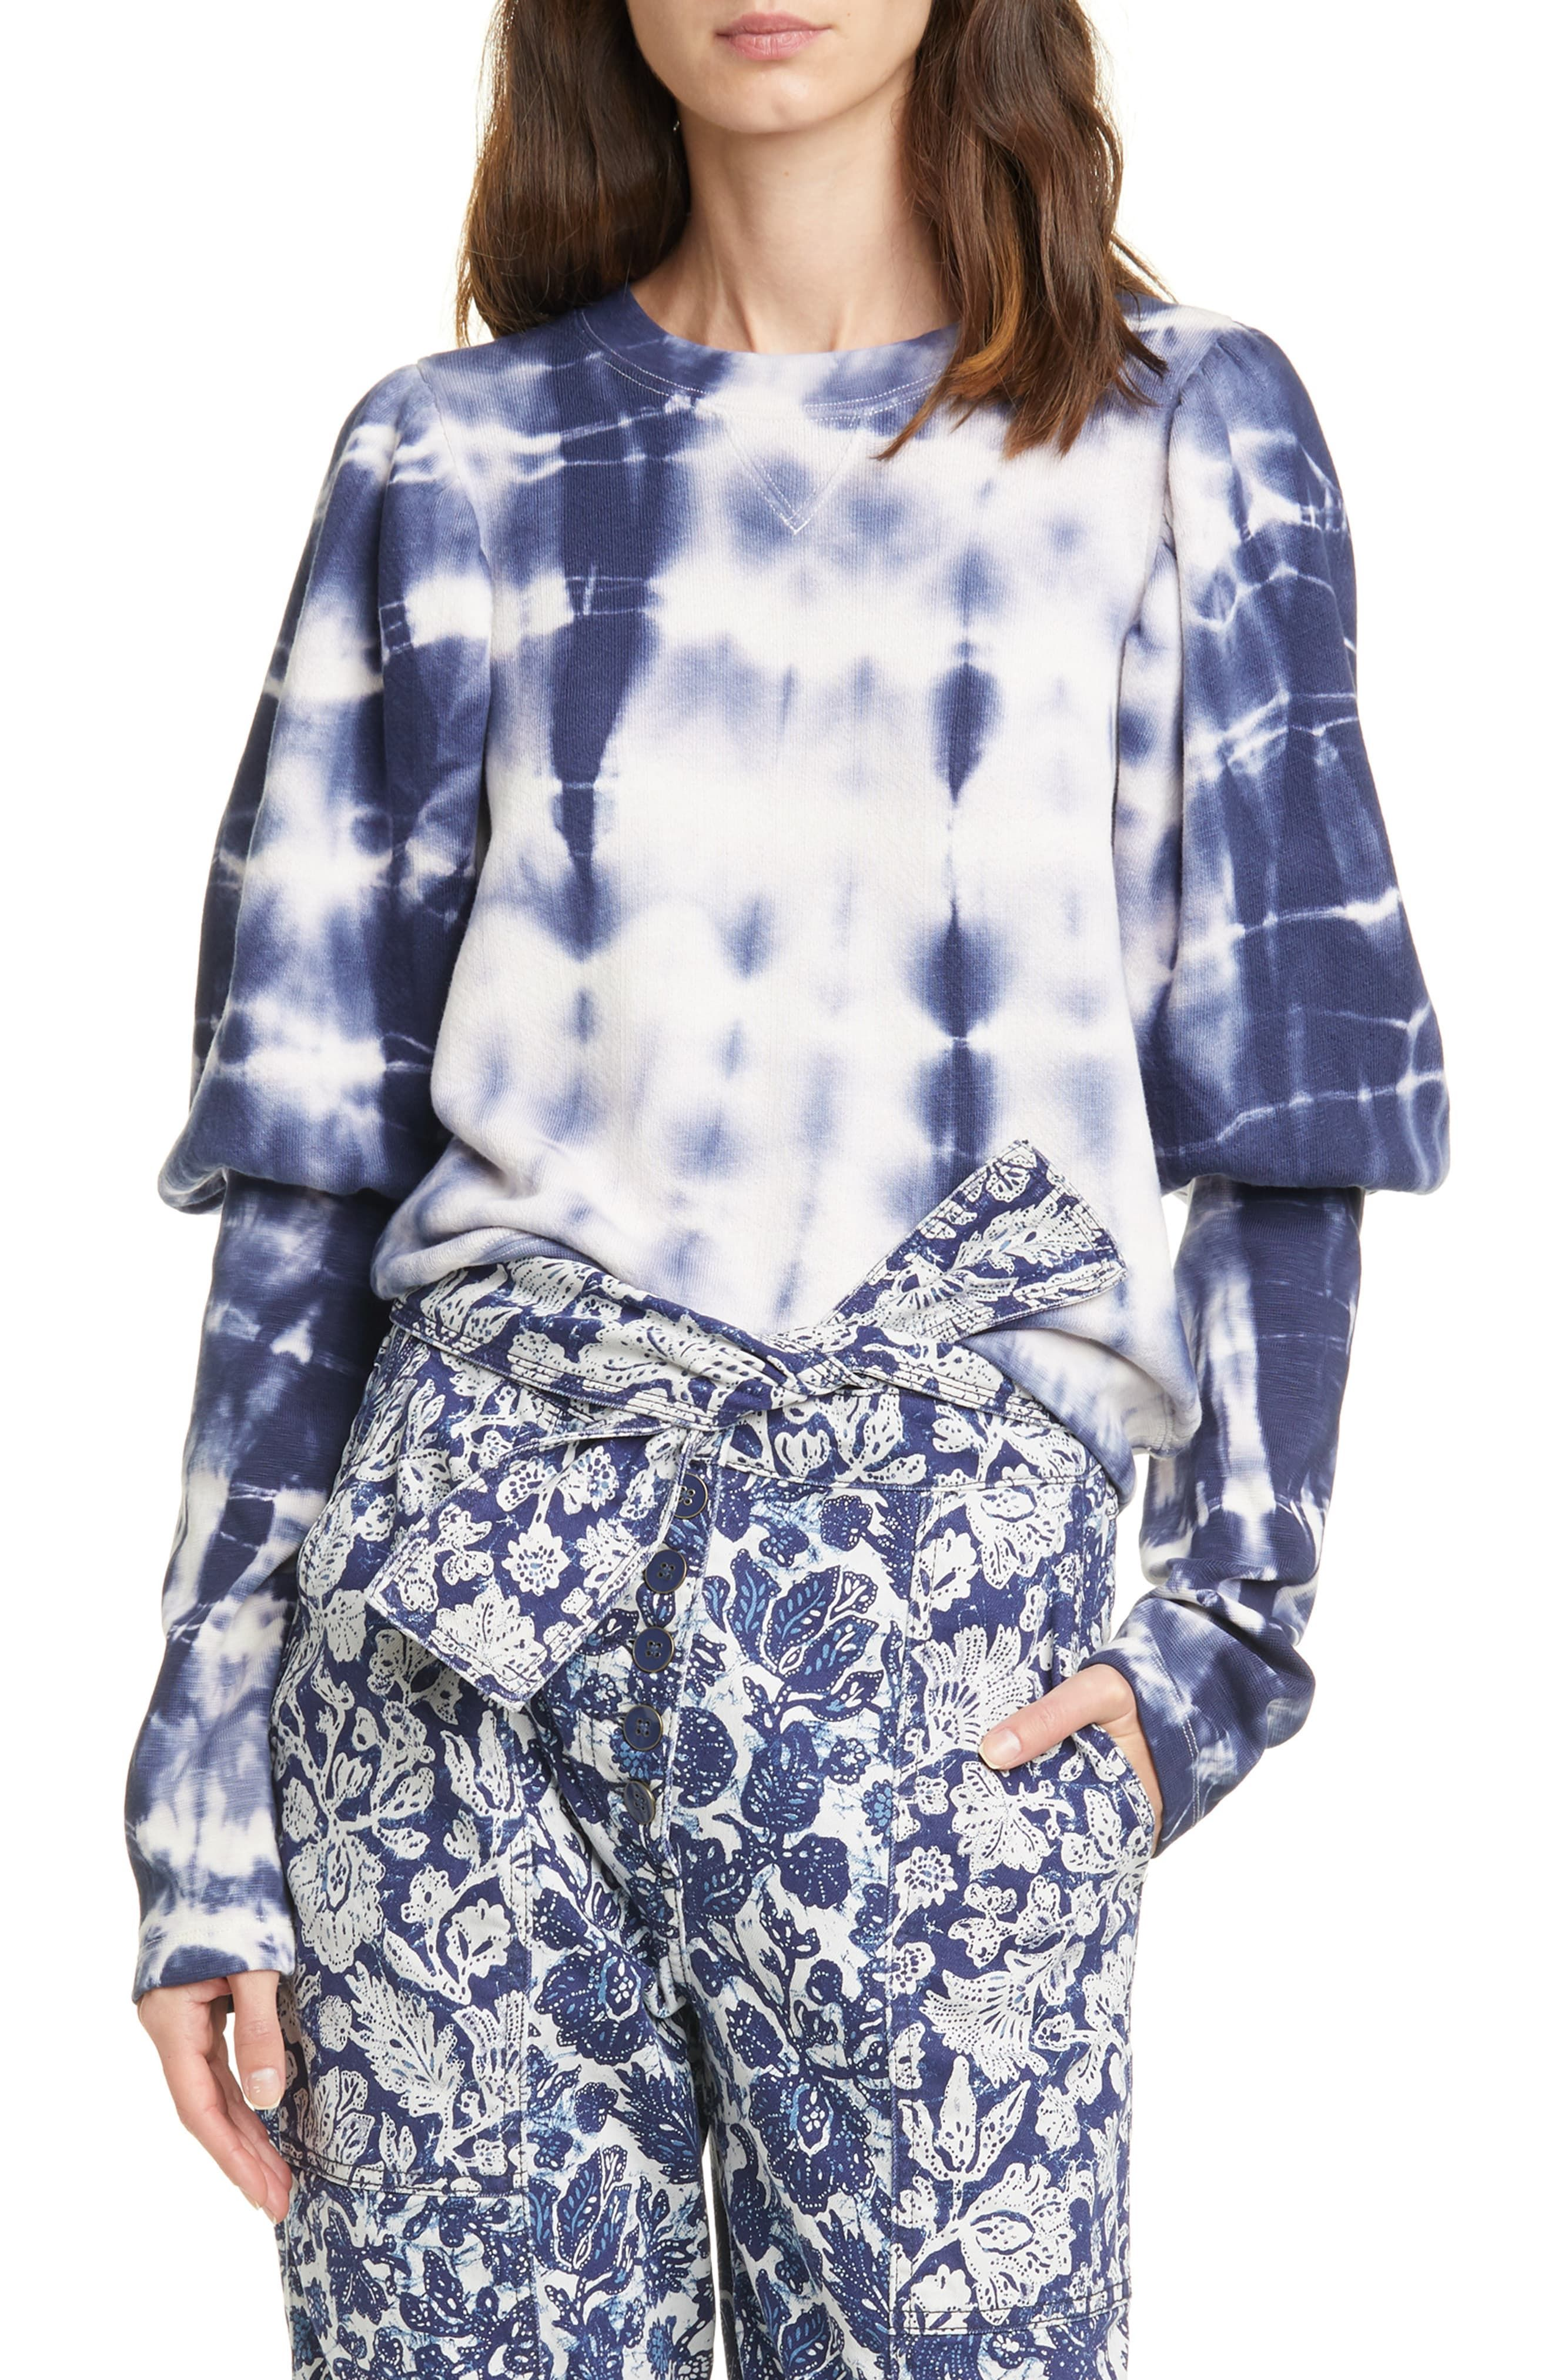 Bleached Tie Dye Nordstrom Point Of View Button Down Shift Dress with Pockets